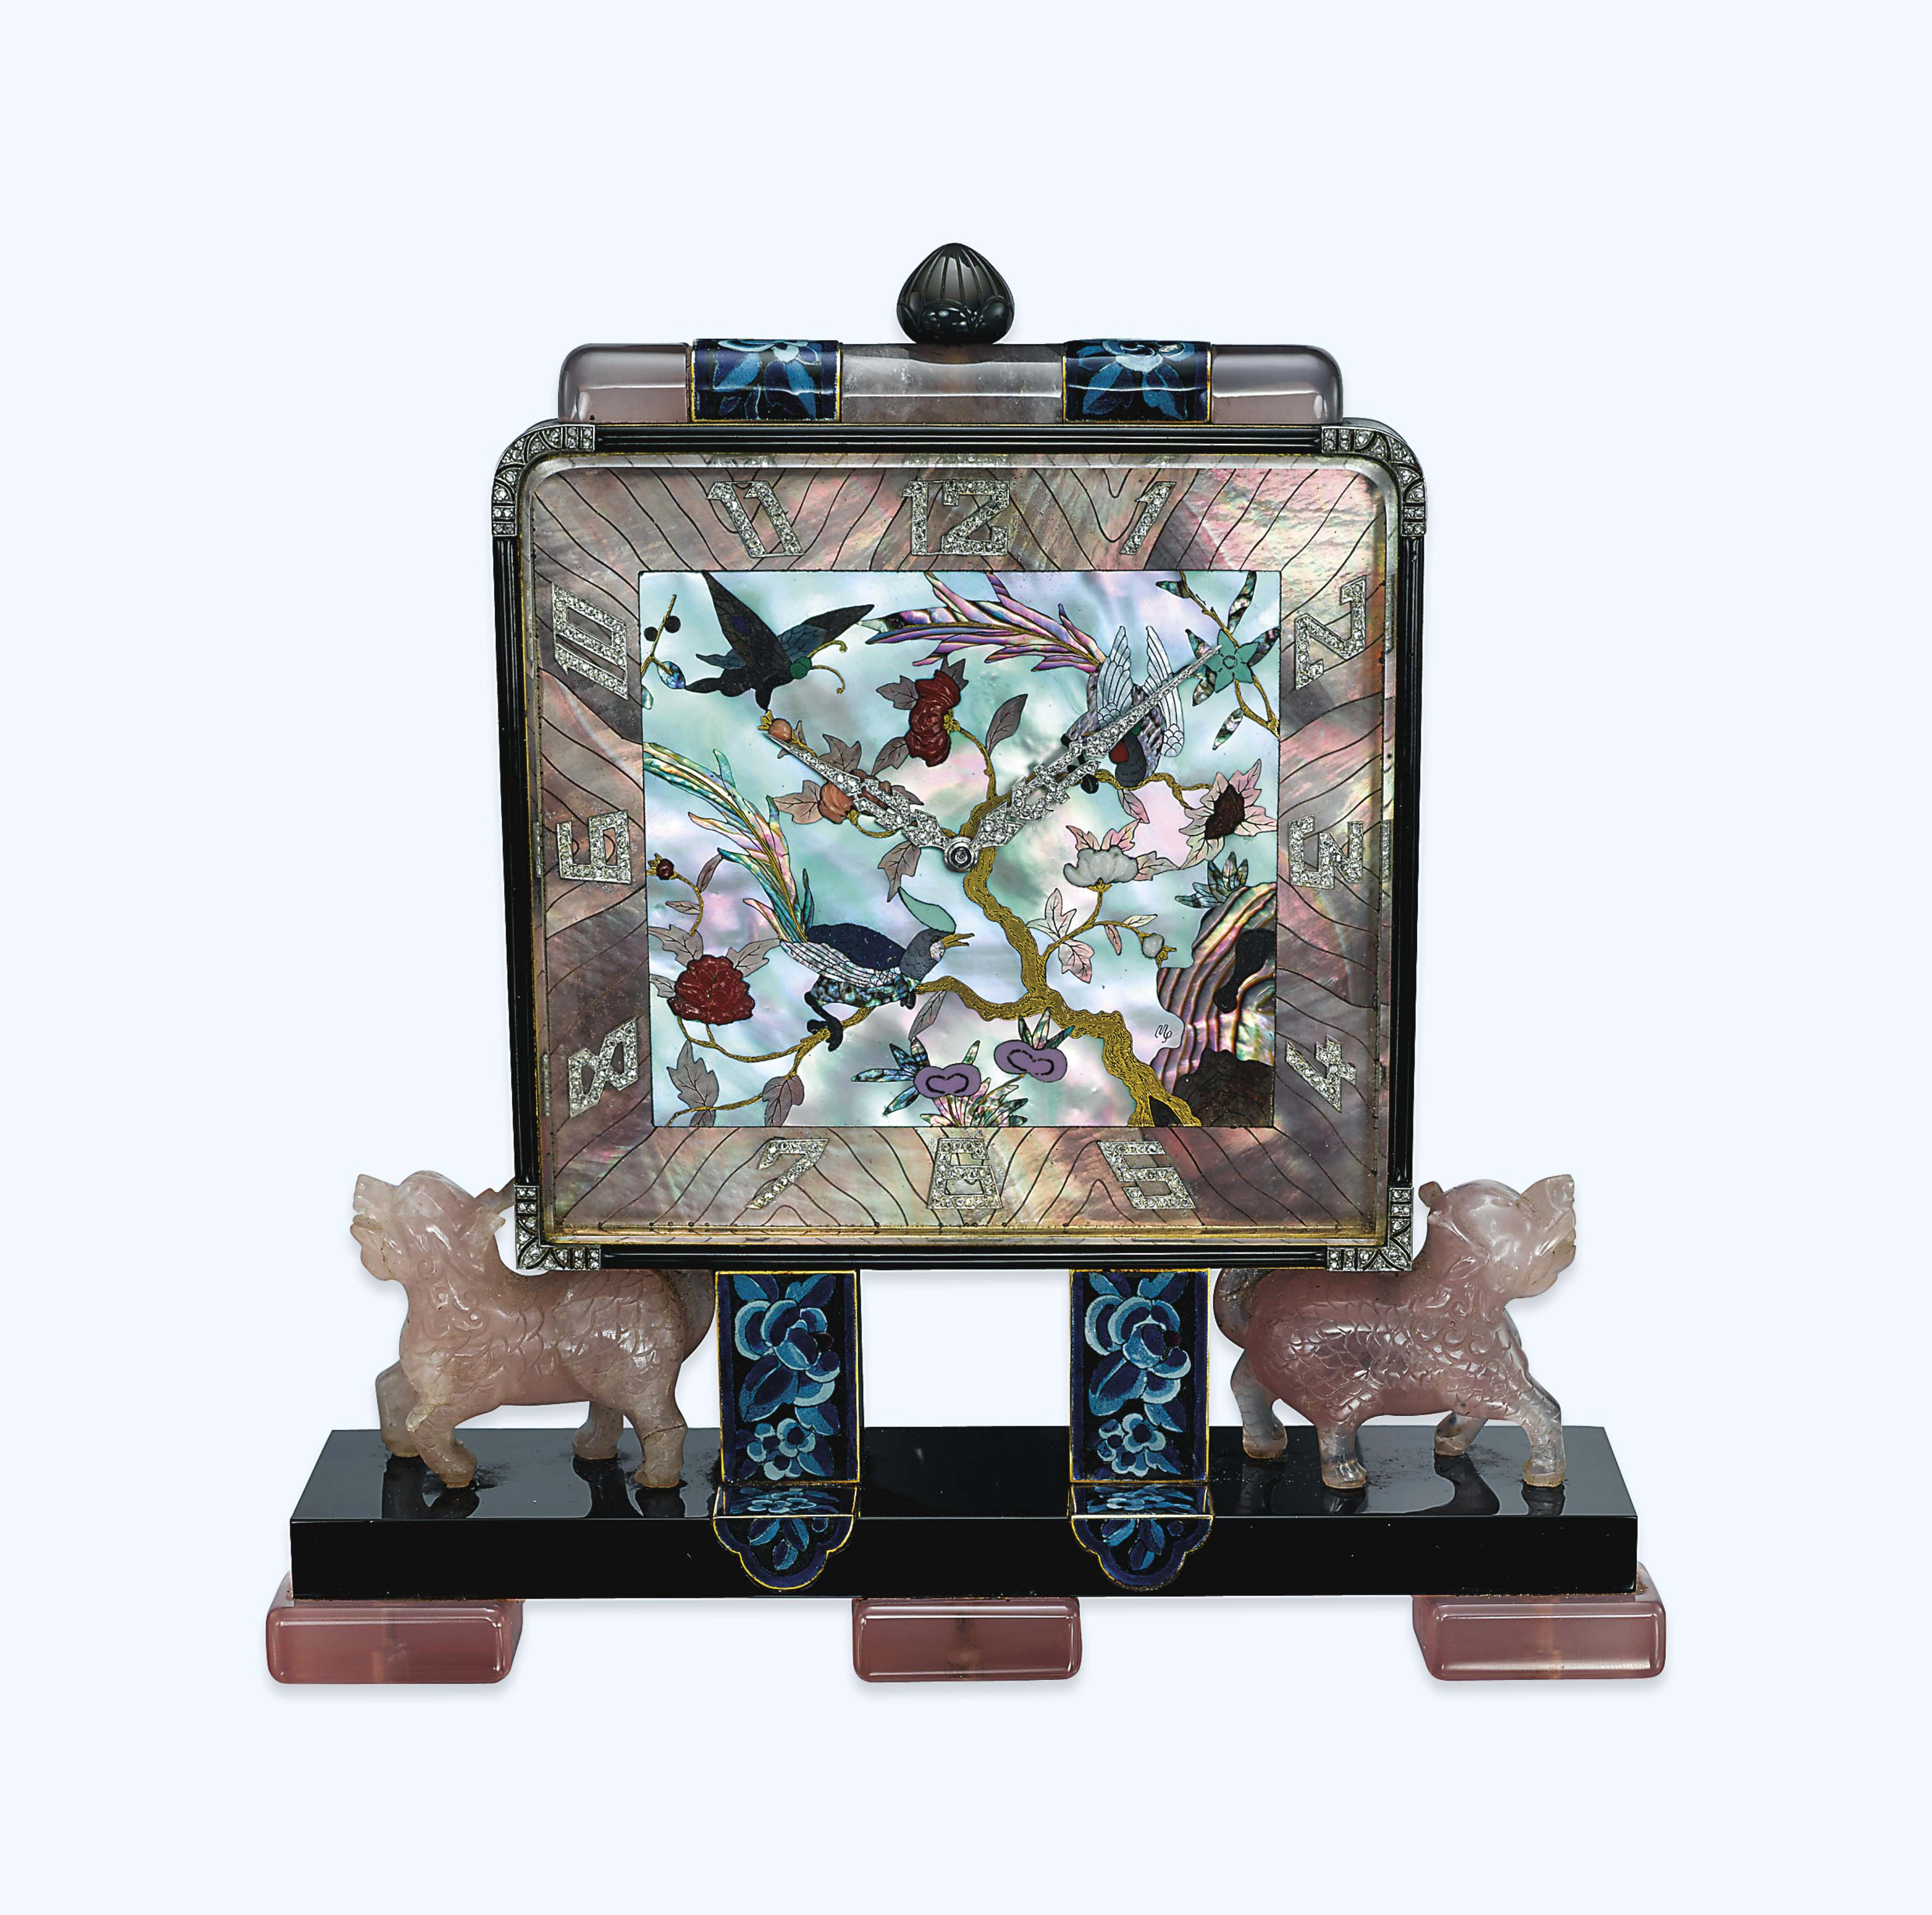 AN ART DECO MOTHER-OF-PEARL, DIAMOND AND GEM-SET CHINOISERIE DESK CLOCK, BY LACLOCHE FRÈRES